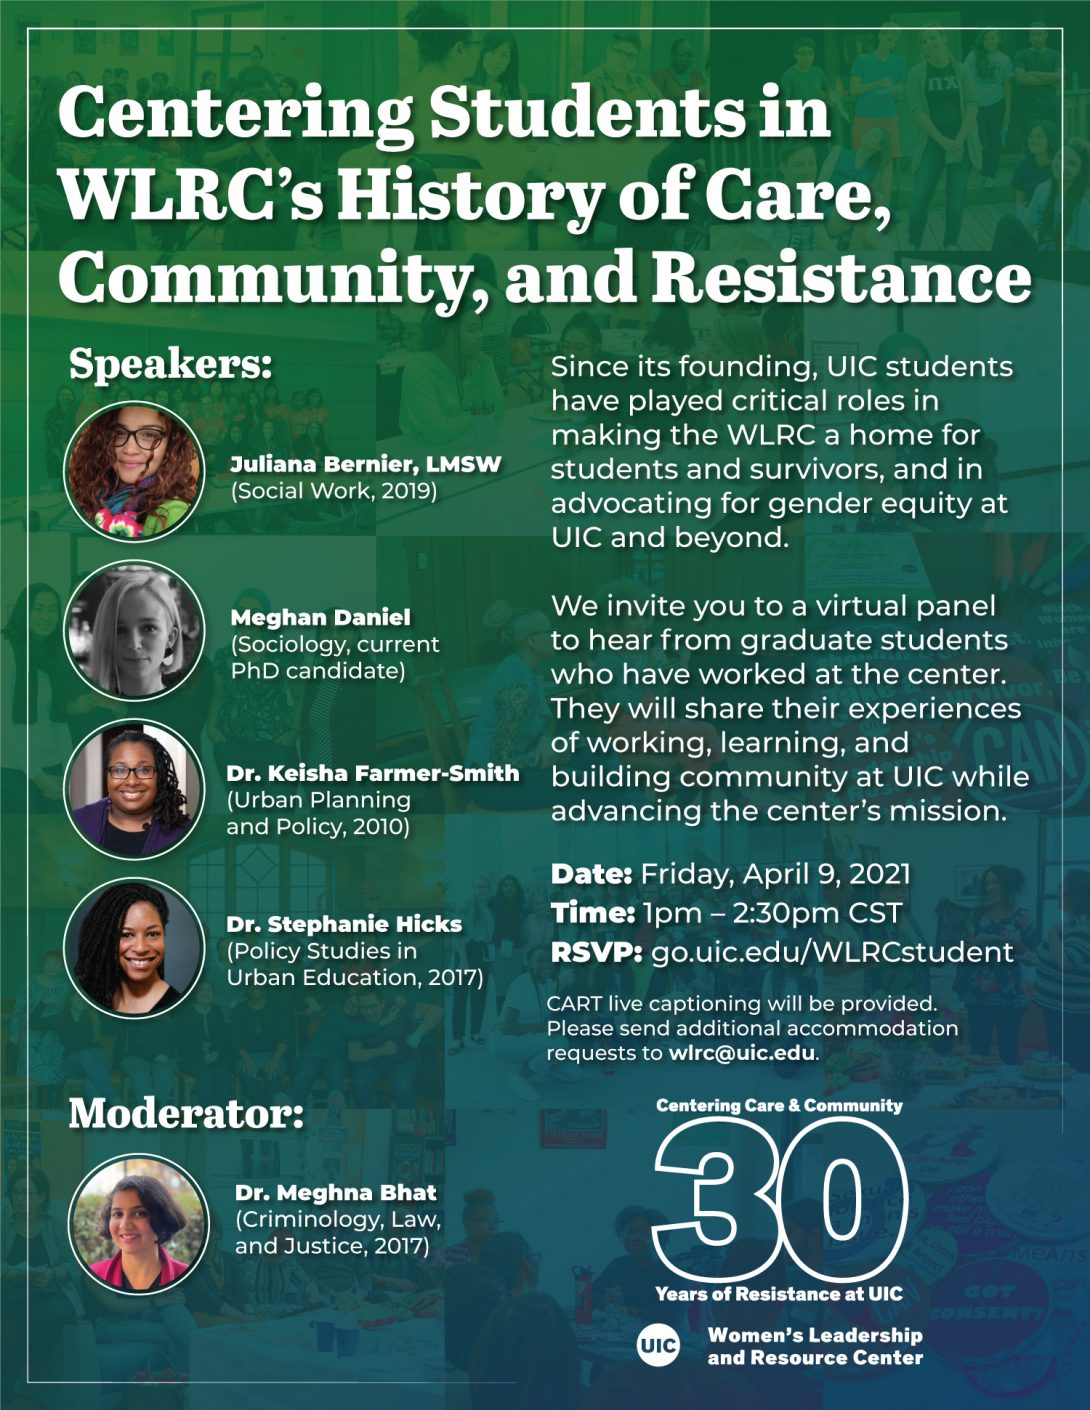 Headsdhots of the 5 former WLRC student employees speaking at the event